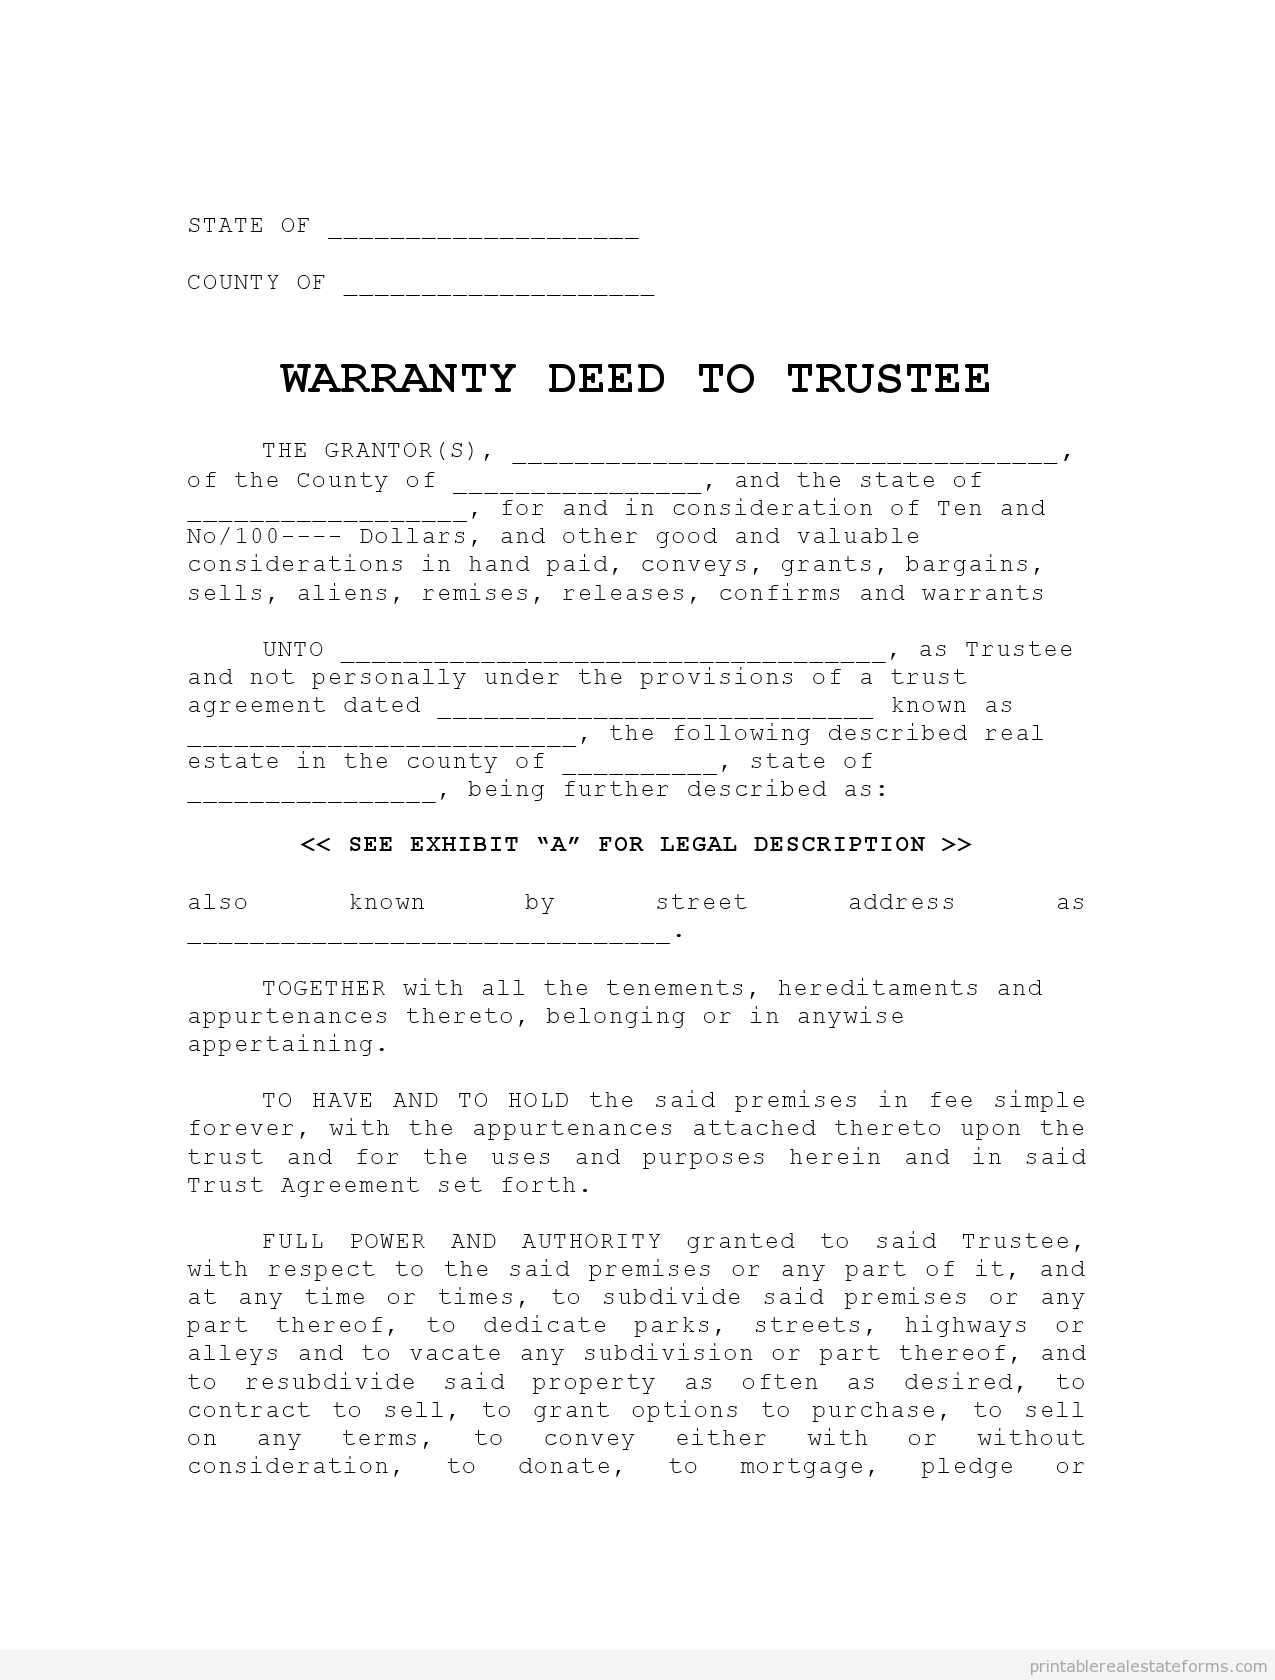 Get High Quality Printable Warranty Deed To TrusteeLease Options